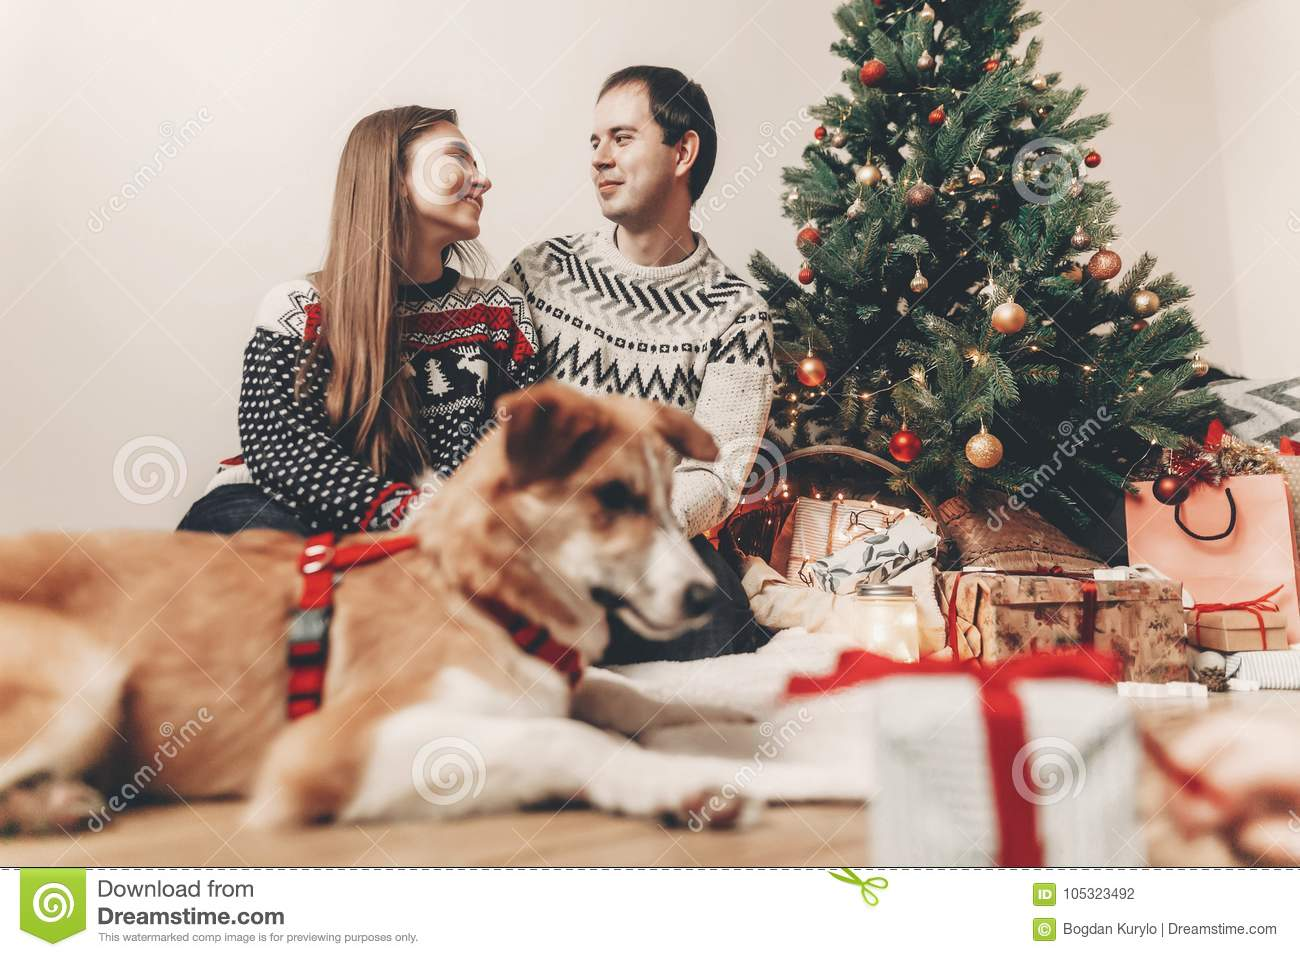 merry christmas and happy new year concept. happy family in stylish sweaters and cute dog at christmas tree with lights and gifts